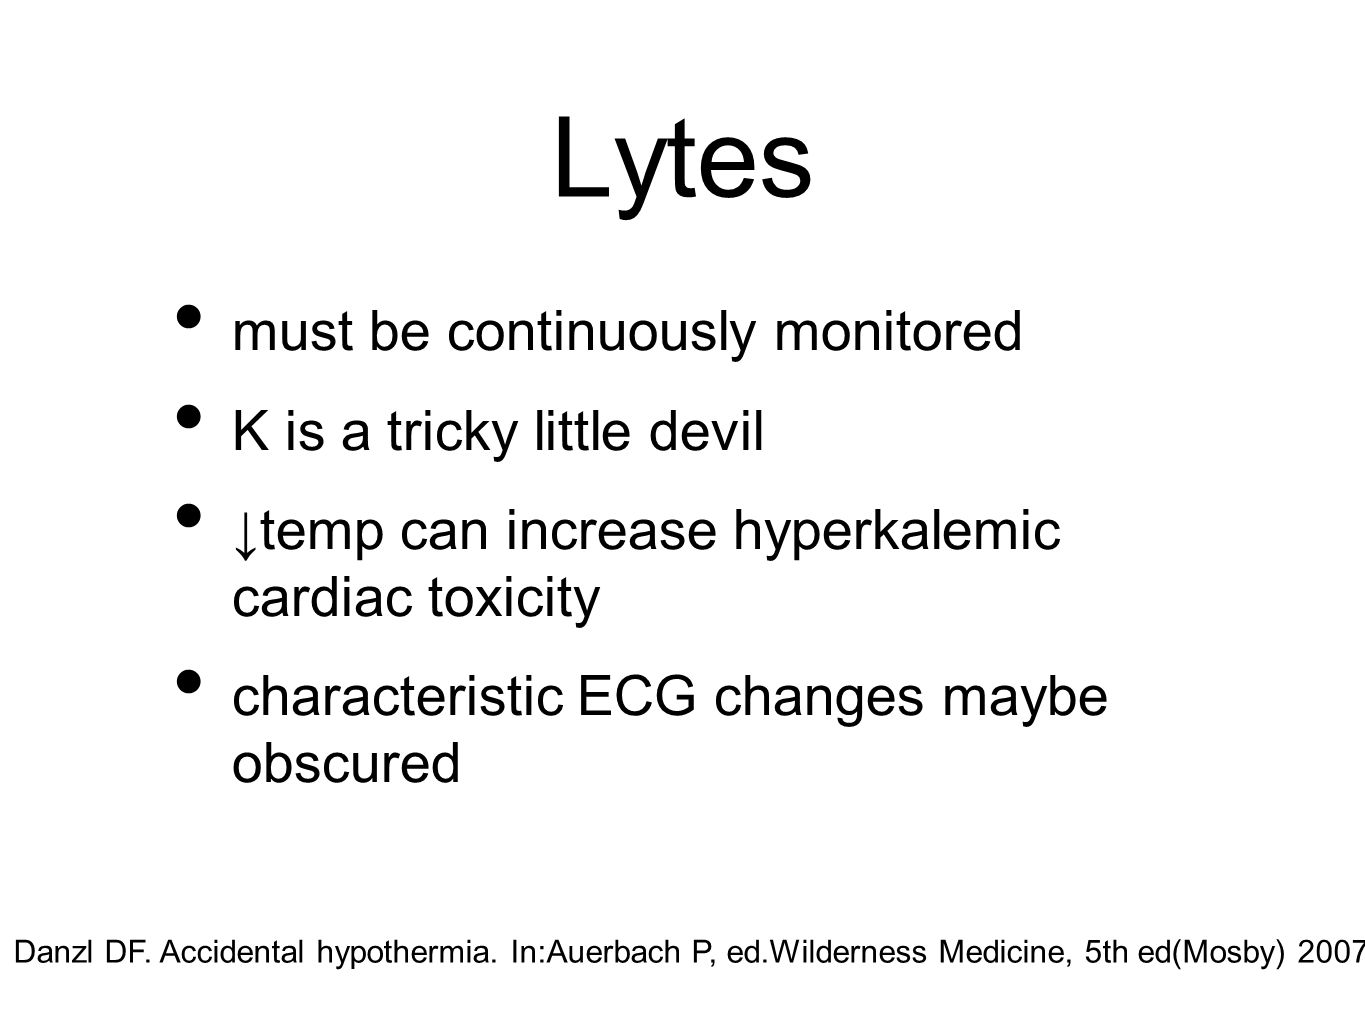 Lytes must be continuously monitored K is a tricky little devil ↓temp can increase hyperkalemic cardiac toxicity characteristic ECG changes maybe obscured Danzl DF.